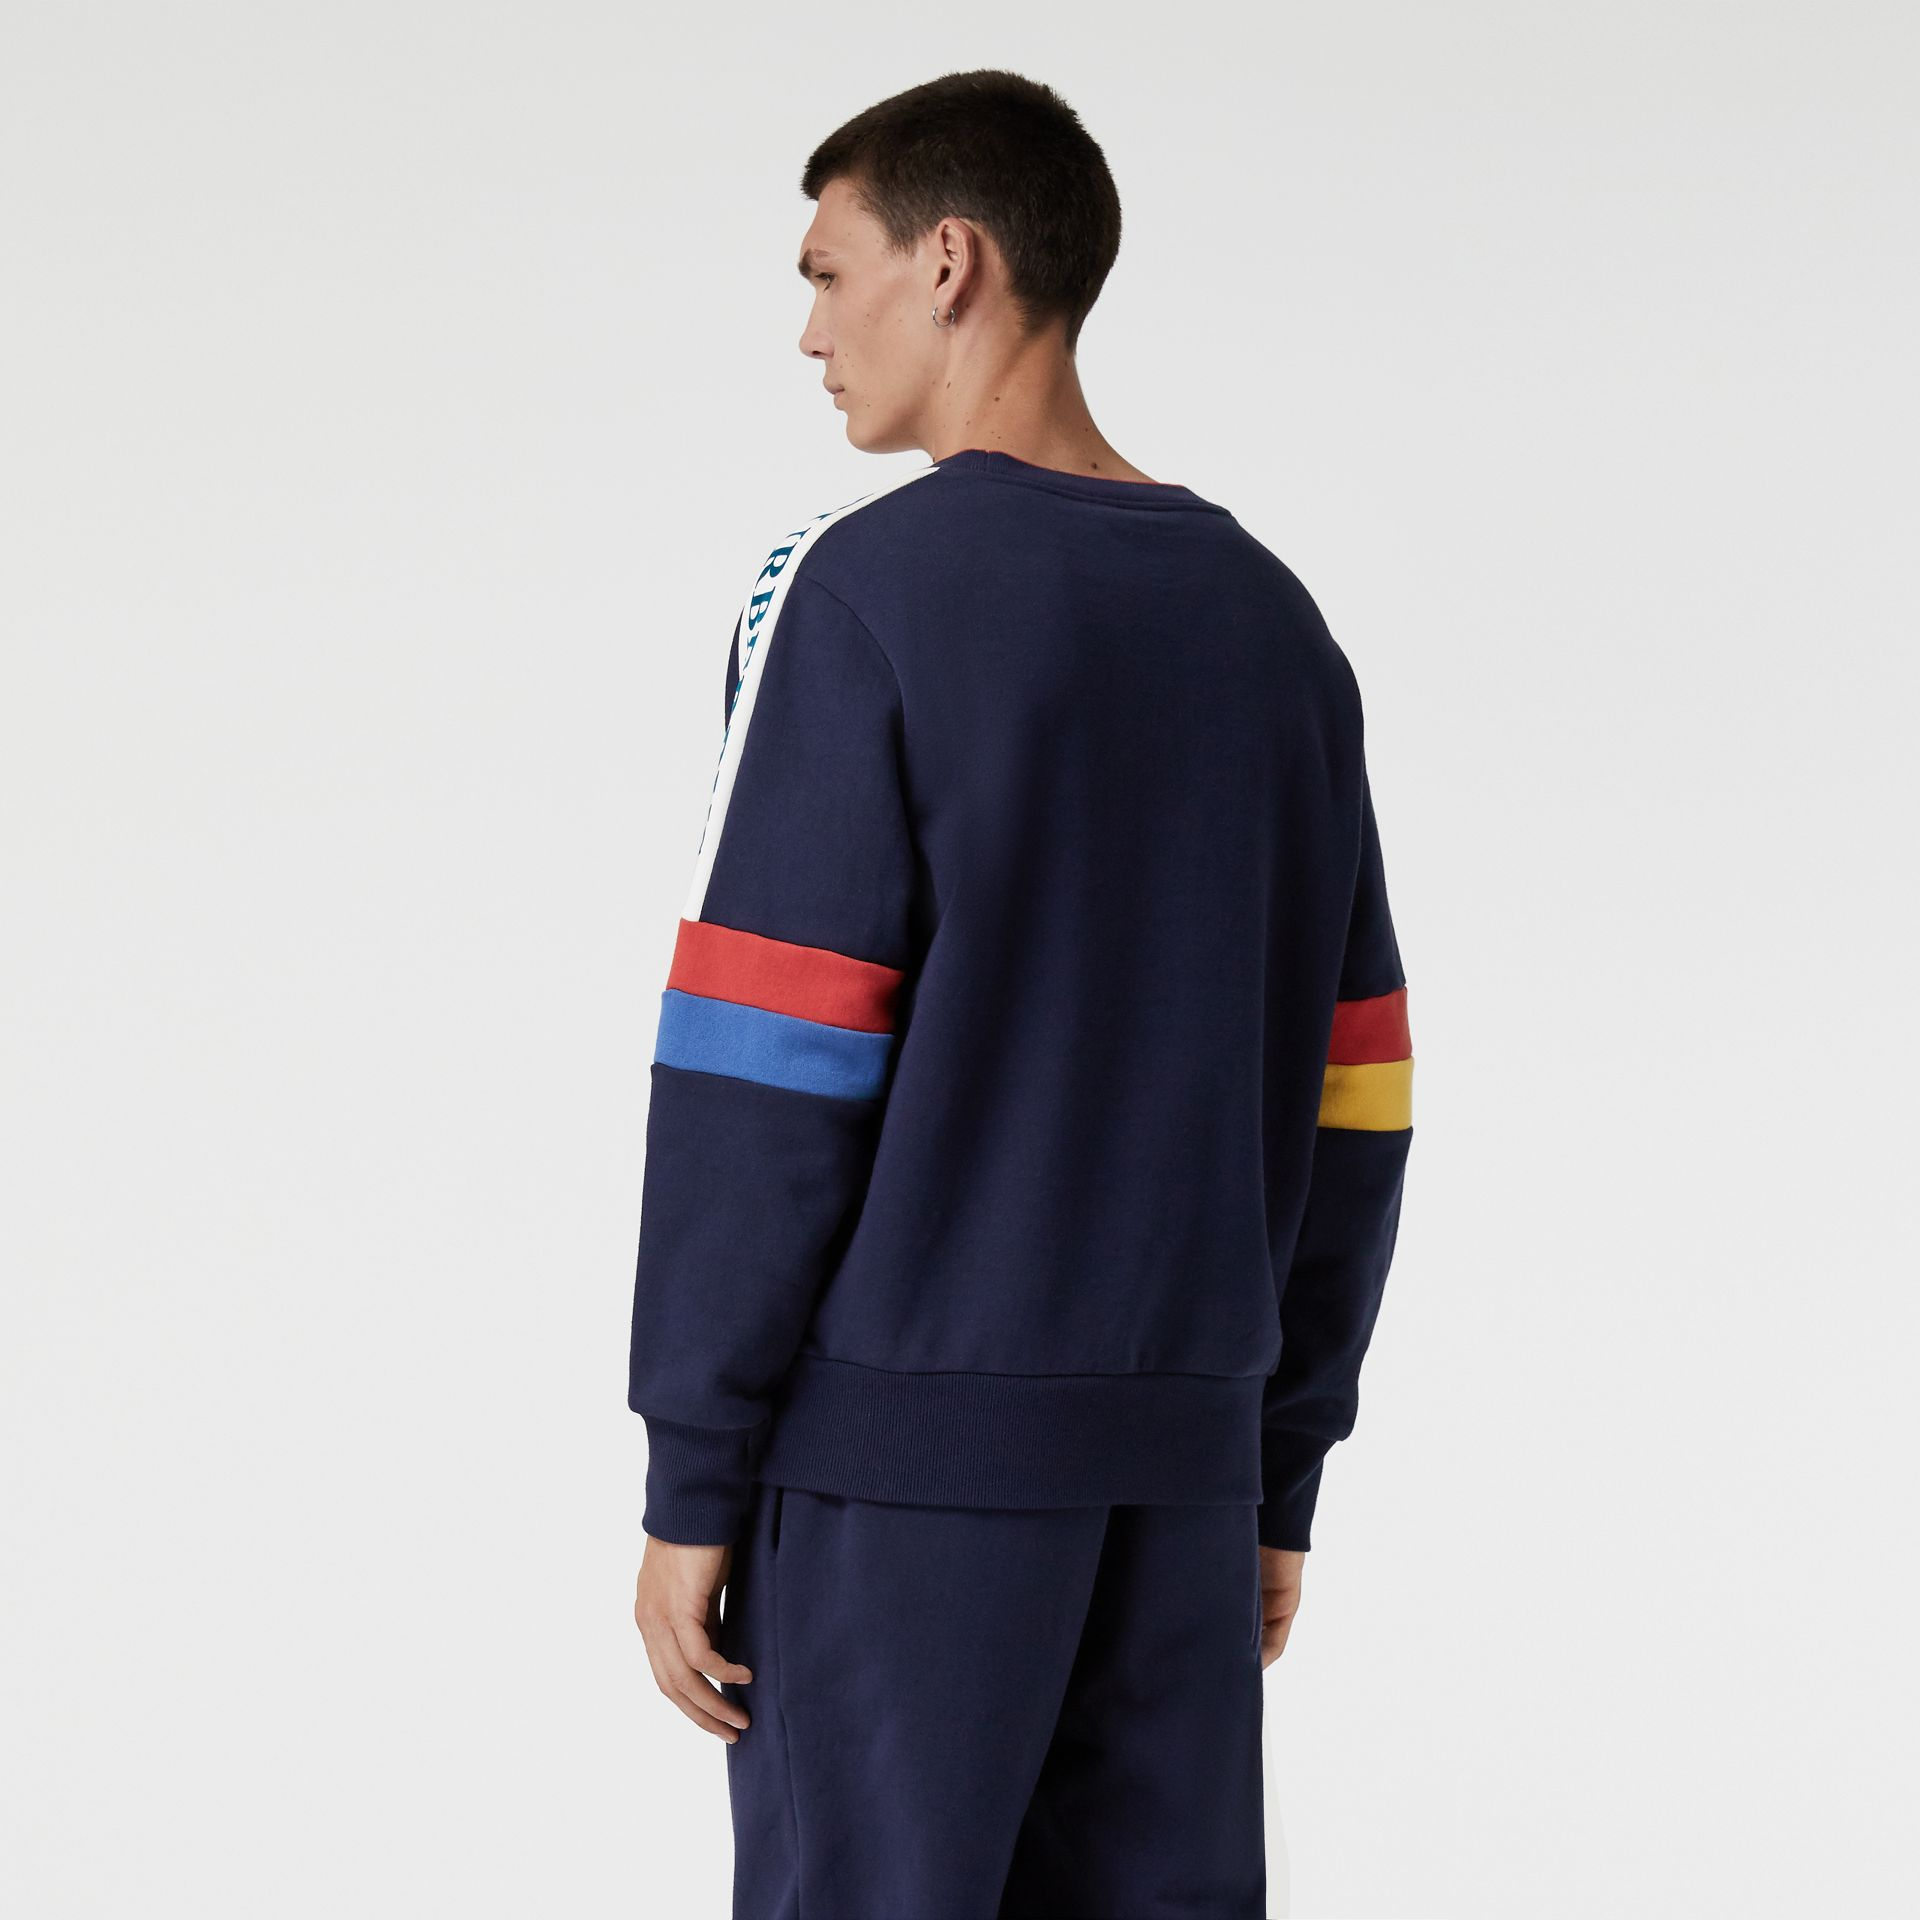 Colour Block Embroidered Archive Logo Sweatshirt in True Navy - Men | Burberry - gallery image 2